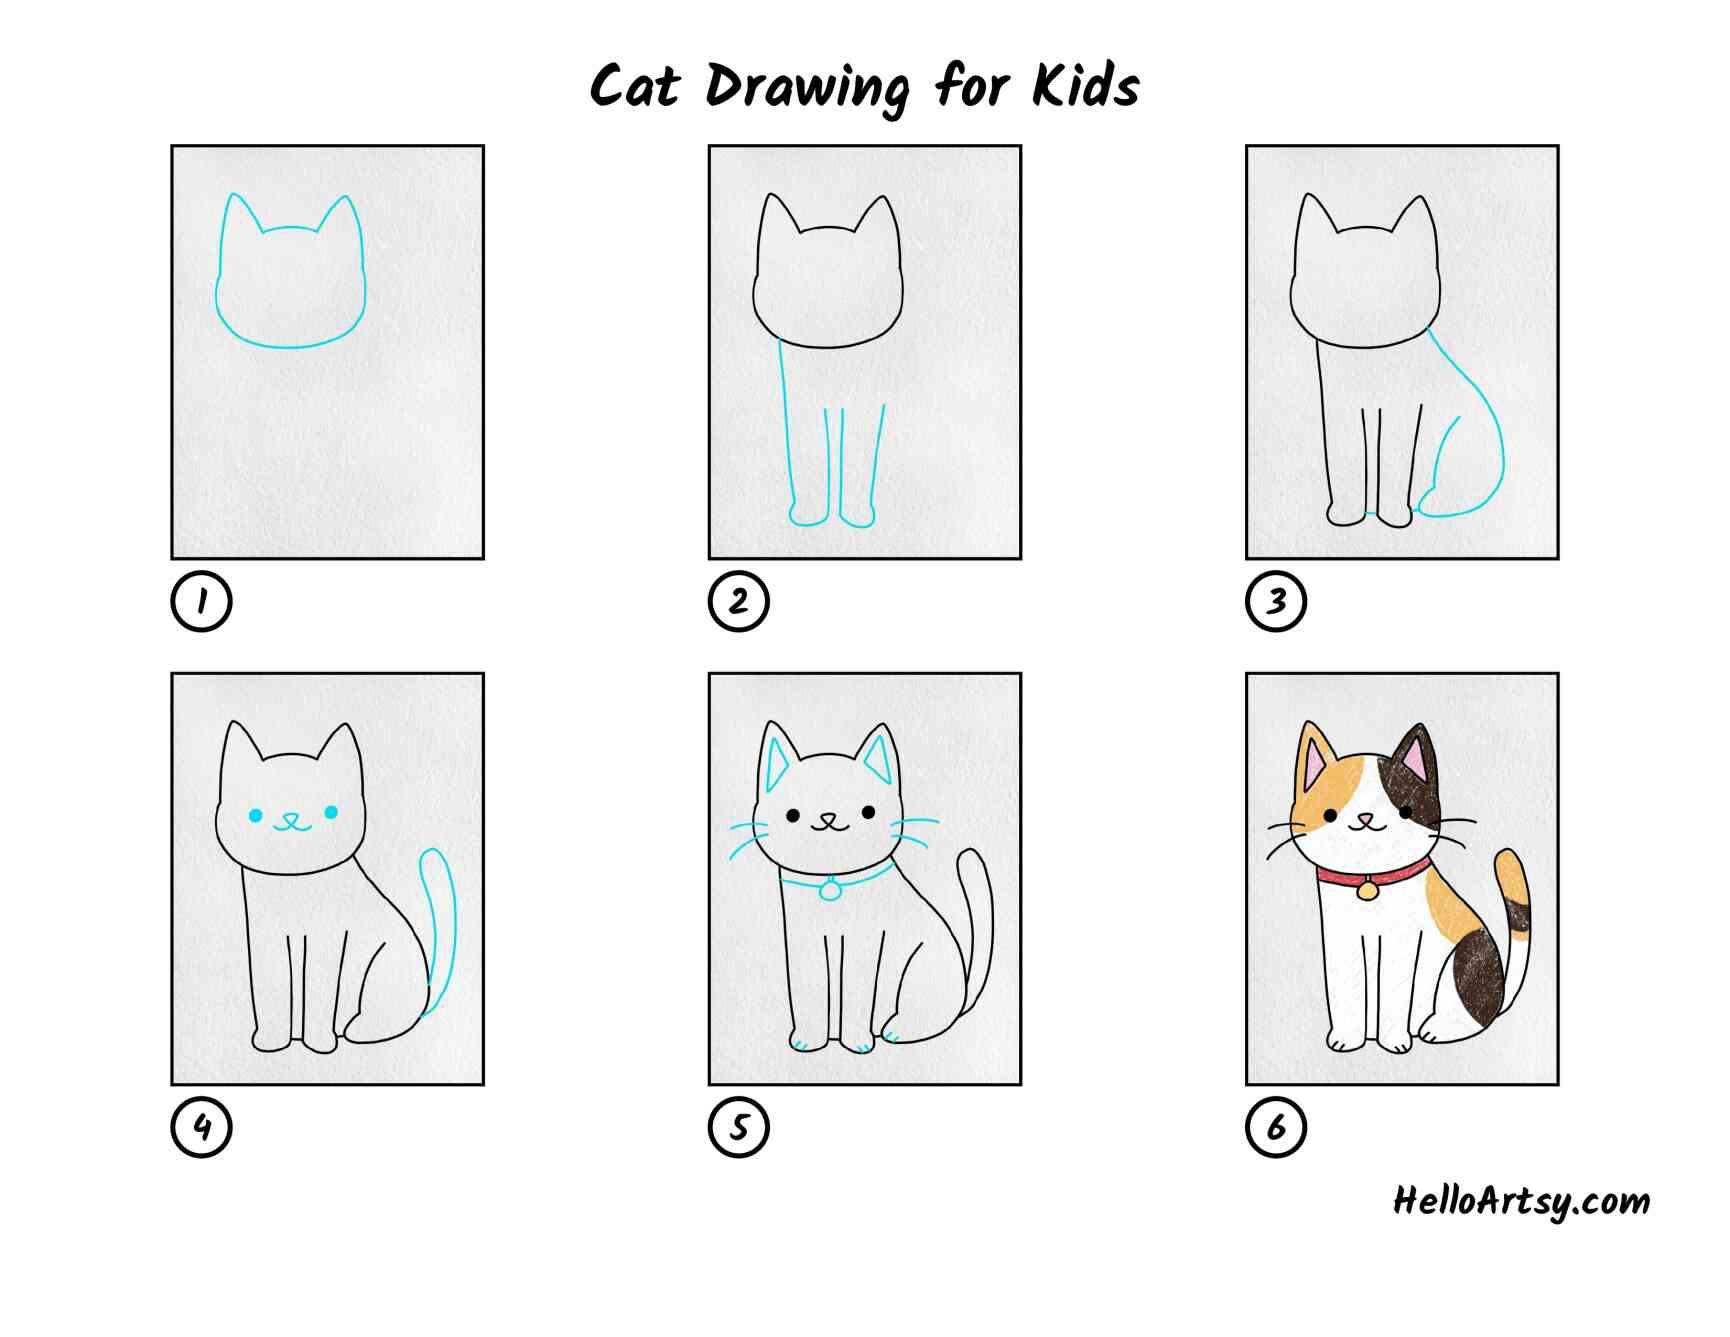 Cat Drawing For Kids: All Steps